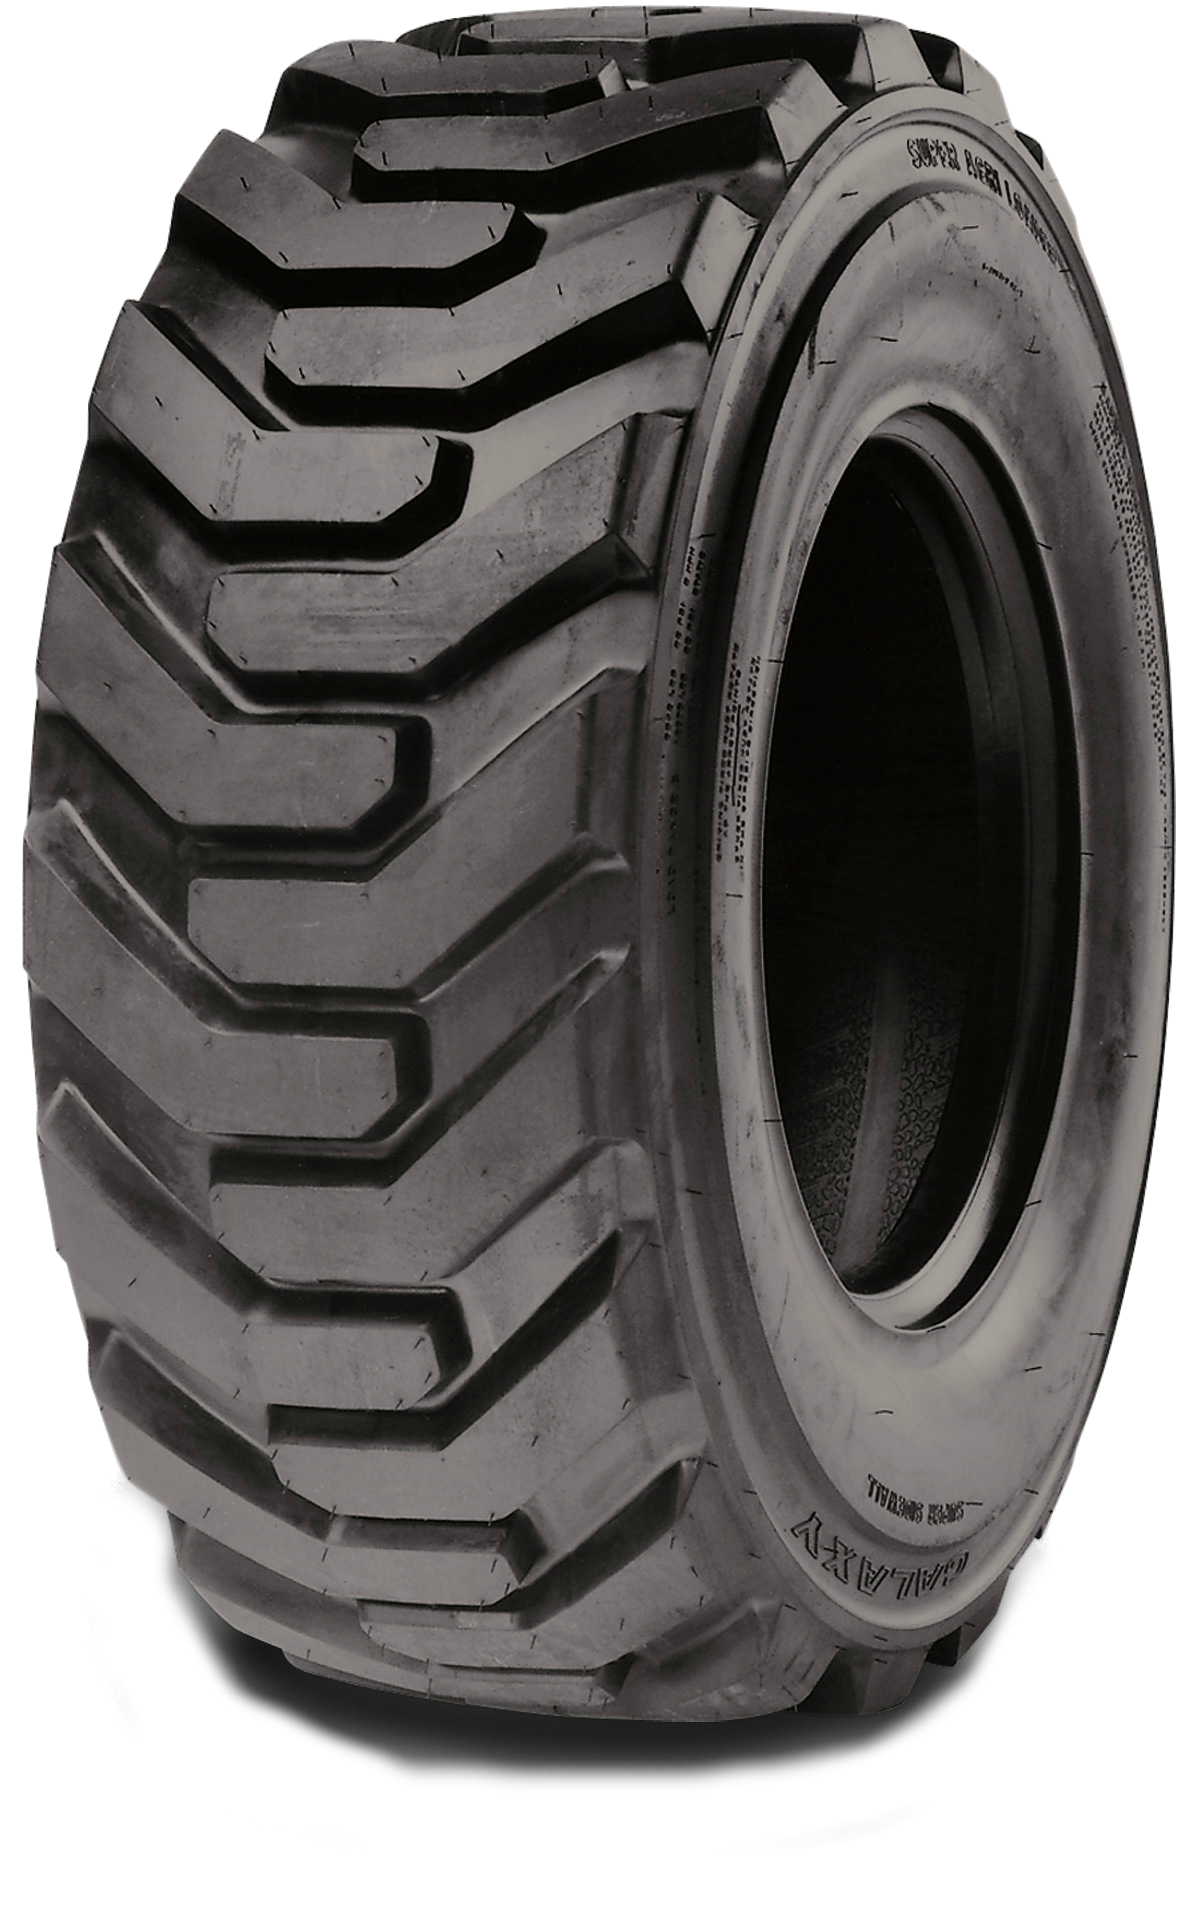 Wheel clipart rubber tire. Png images free download